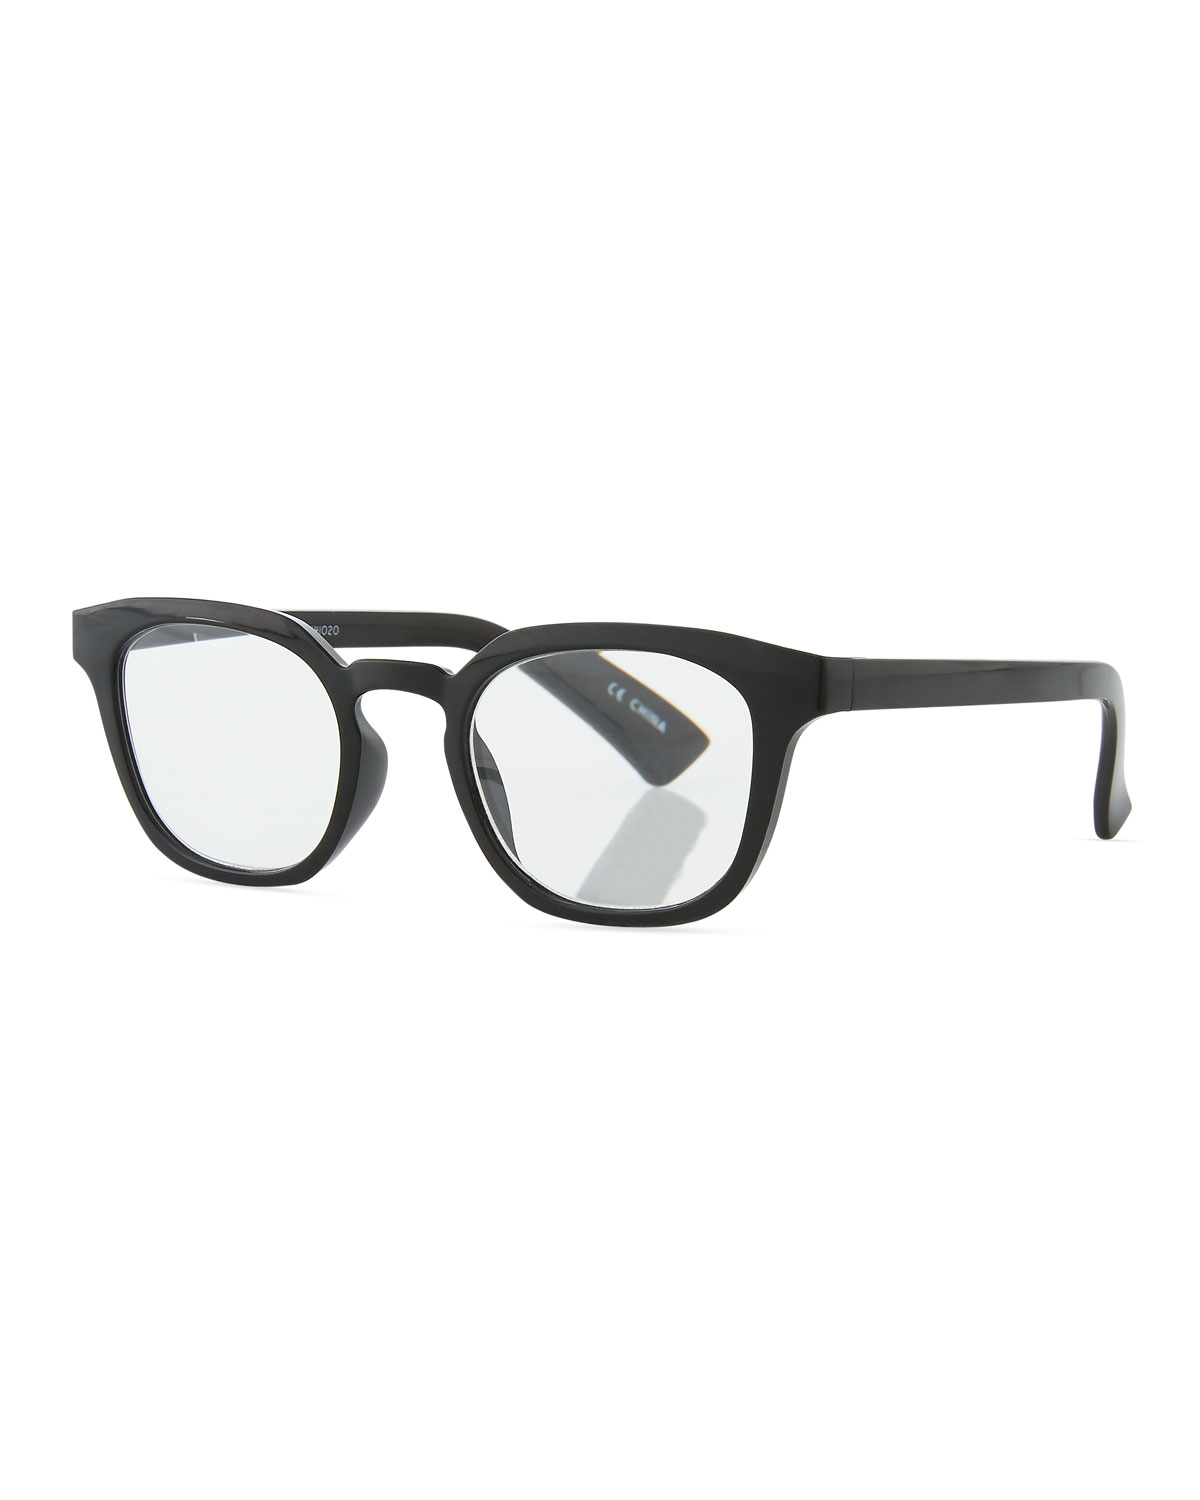 Cents And No Ability Reading Glasses in Black Pattern